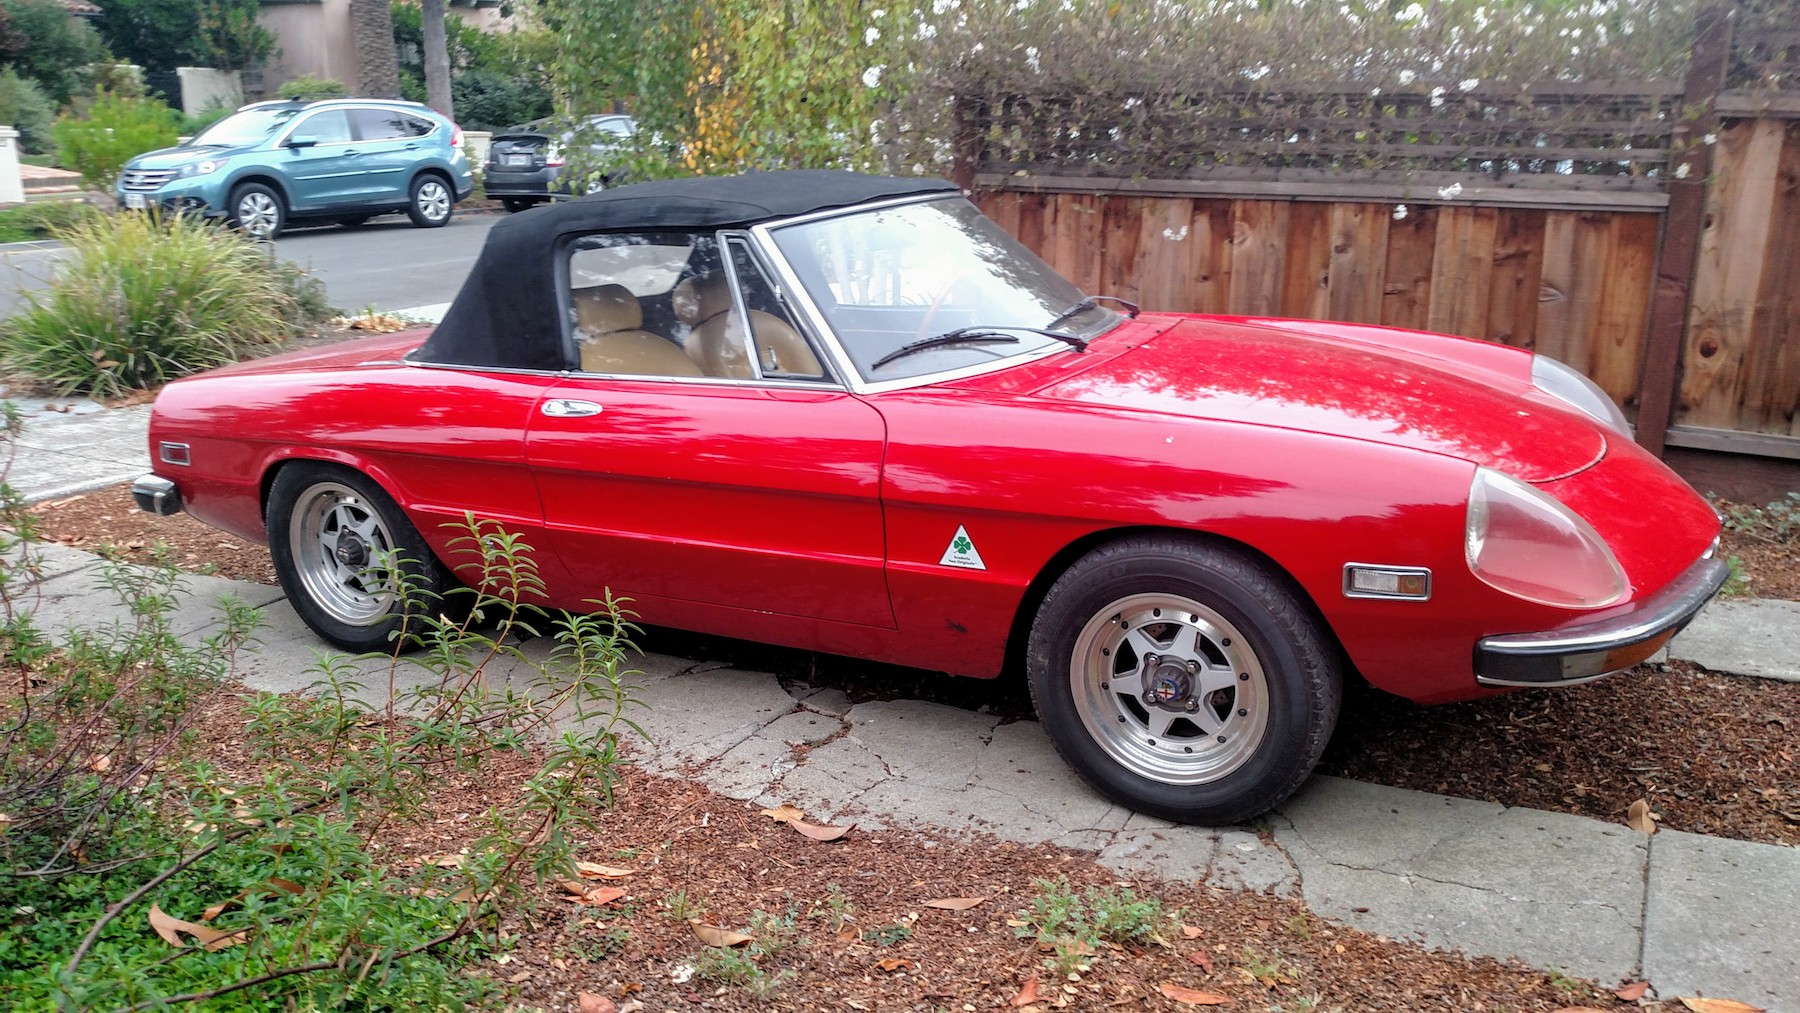 The ex-Joe Cantrell 1972 ALFA Spider